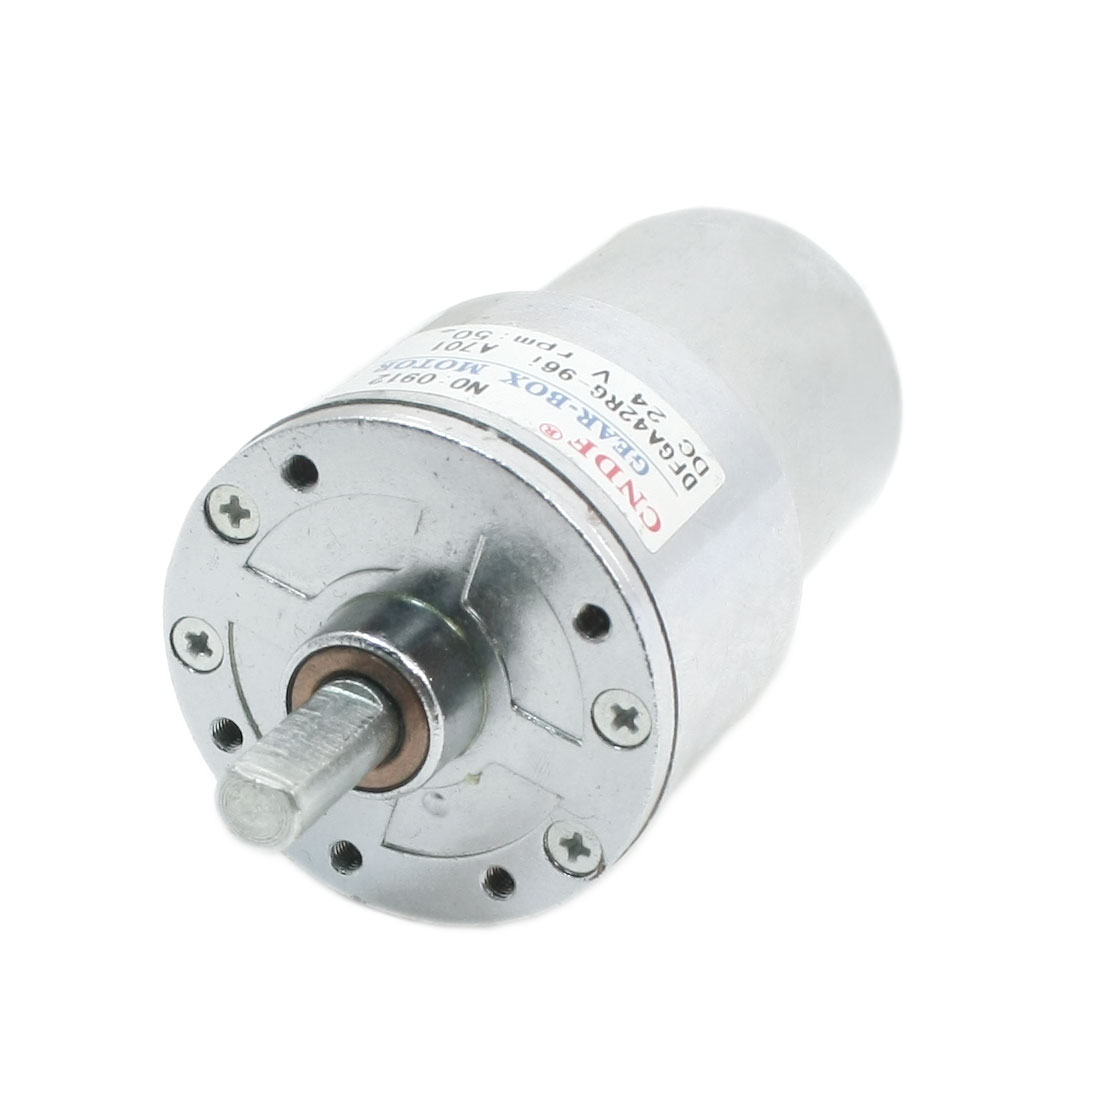 DFGA42RG DC 24V 50RPM 7mm Dia Shaft 88mm Long Connector 3mm Thread Hole Dia Magnetic Gear Box Electric Motor